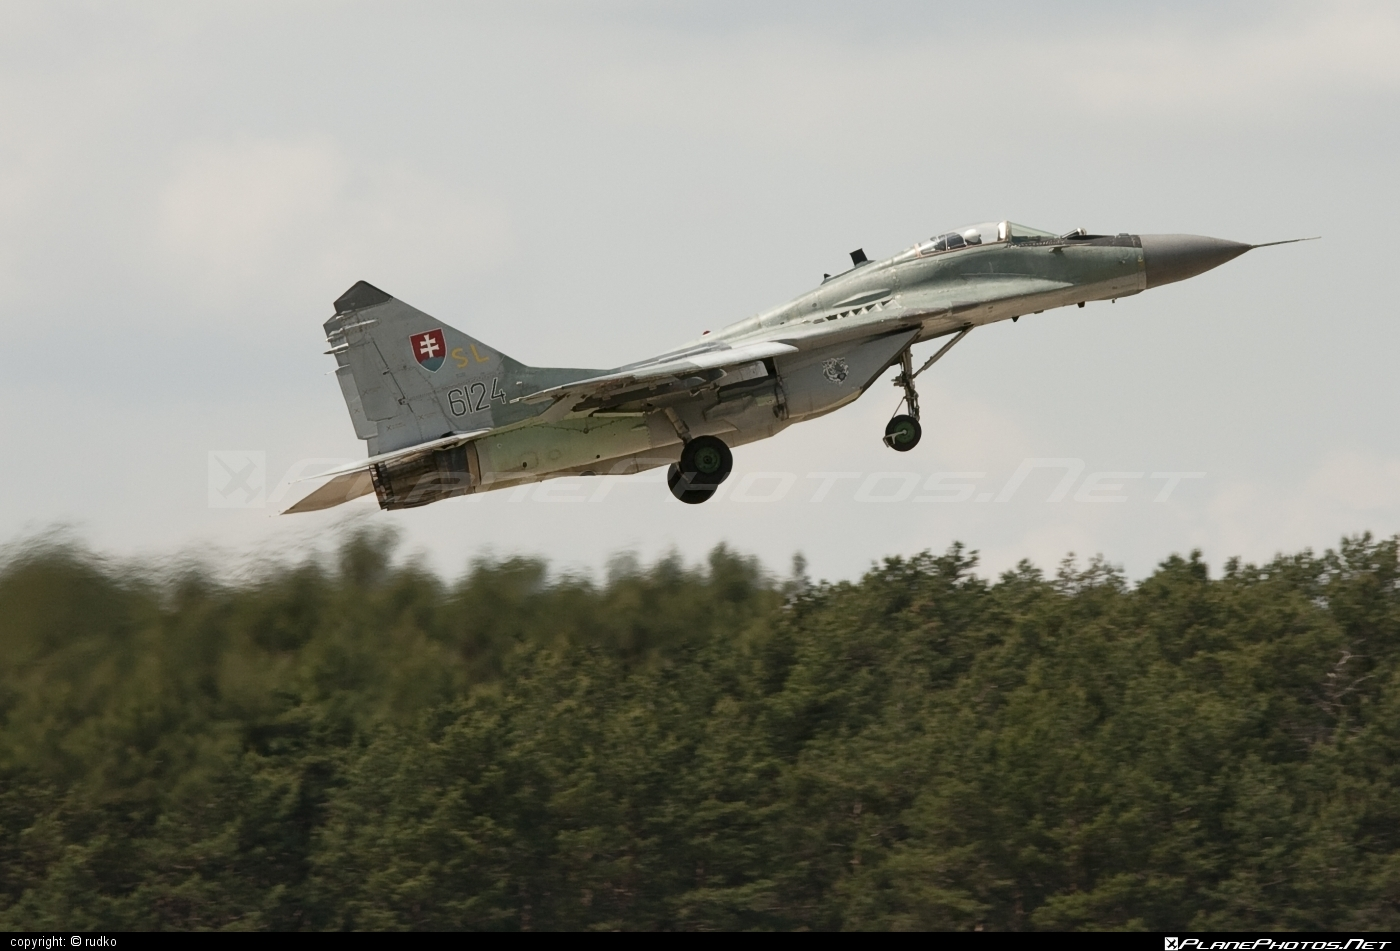 Mikoyan-Gurevich MiG-29AS - 6124 operated by Vzdušné sily OS SR (Slovak Air Force) #mig #mig29 #mig29as #mikoyangurevich #slovakairforce #vzdusnesilyossr